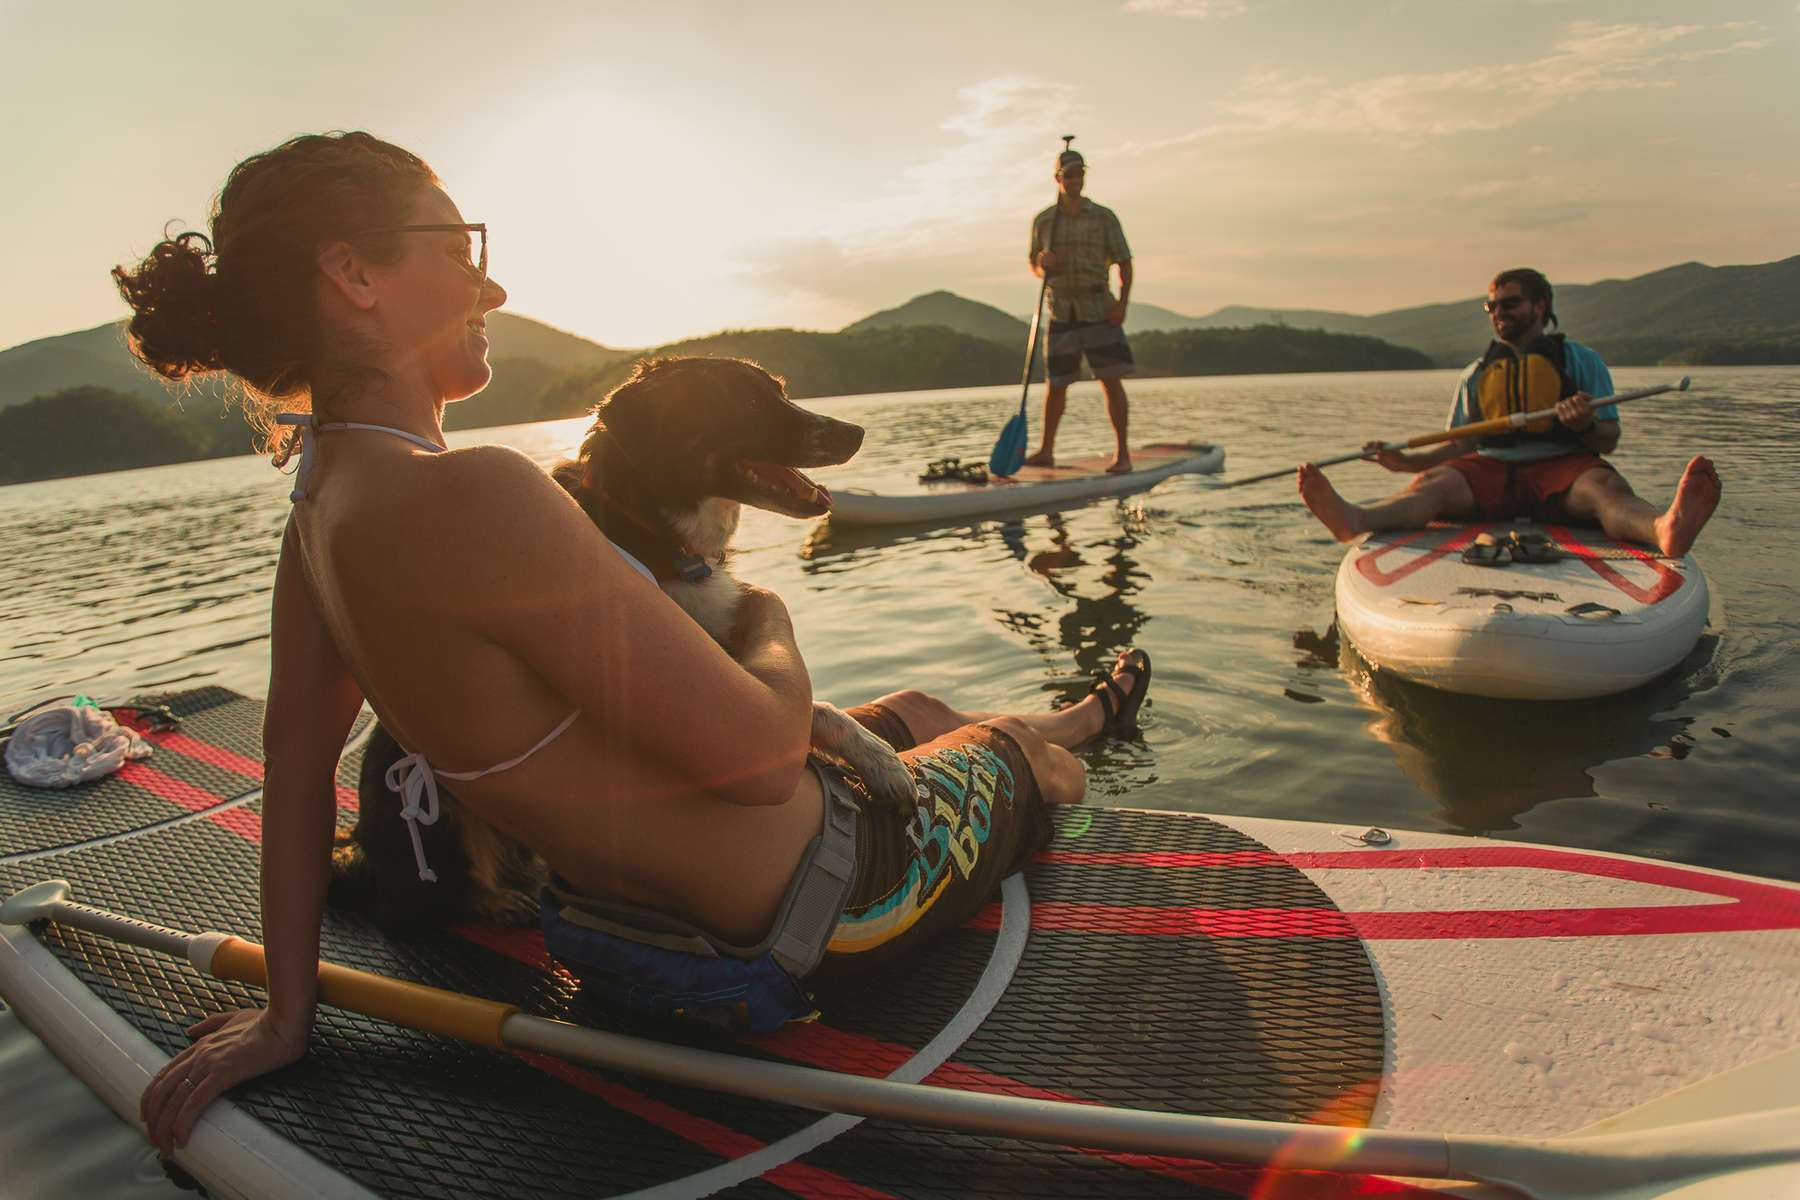 Relaxing after a paddle board session on a lake outside Roanoke, Va.